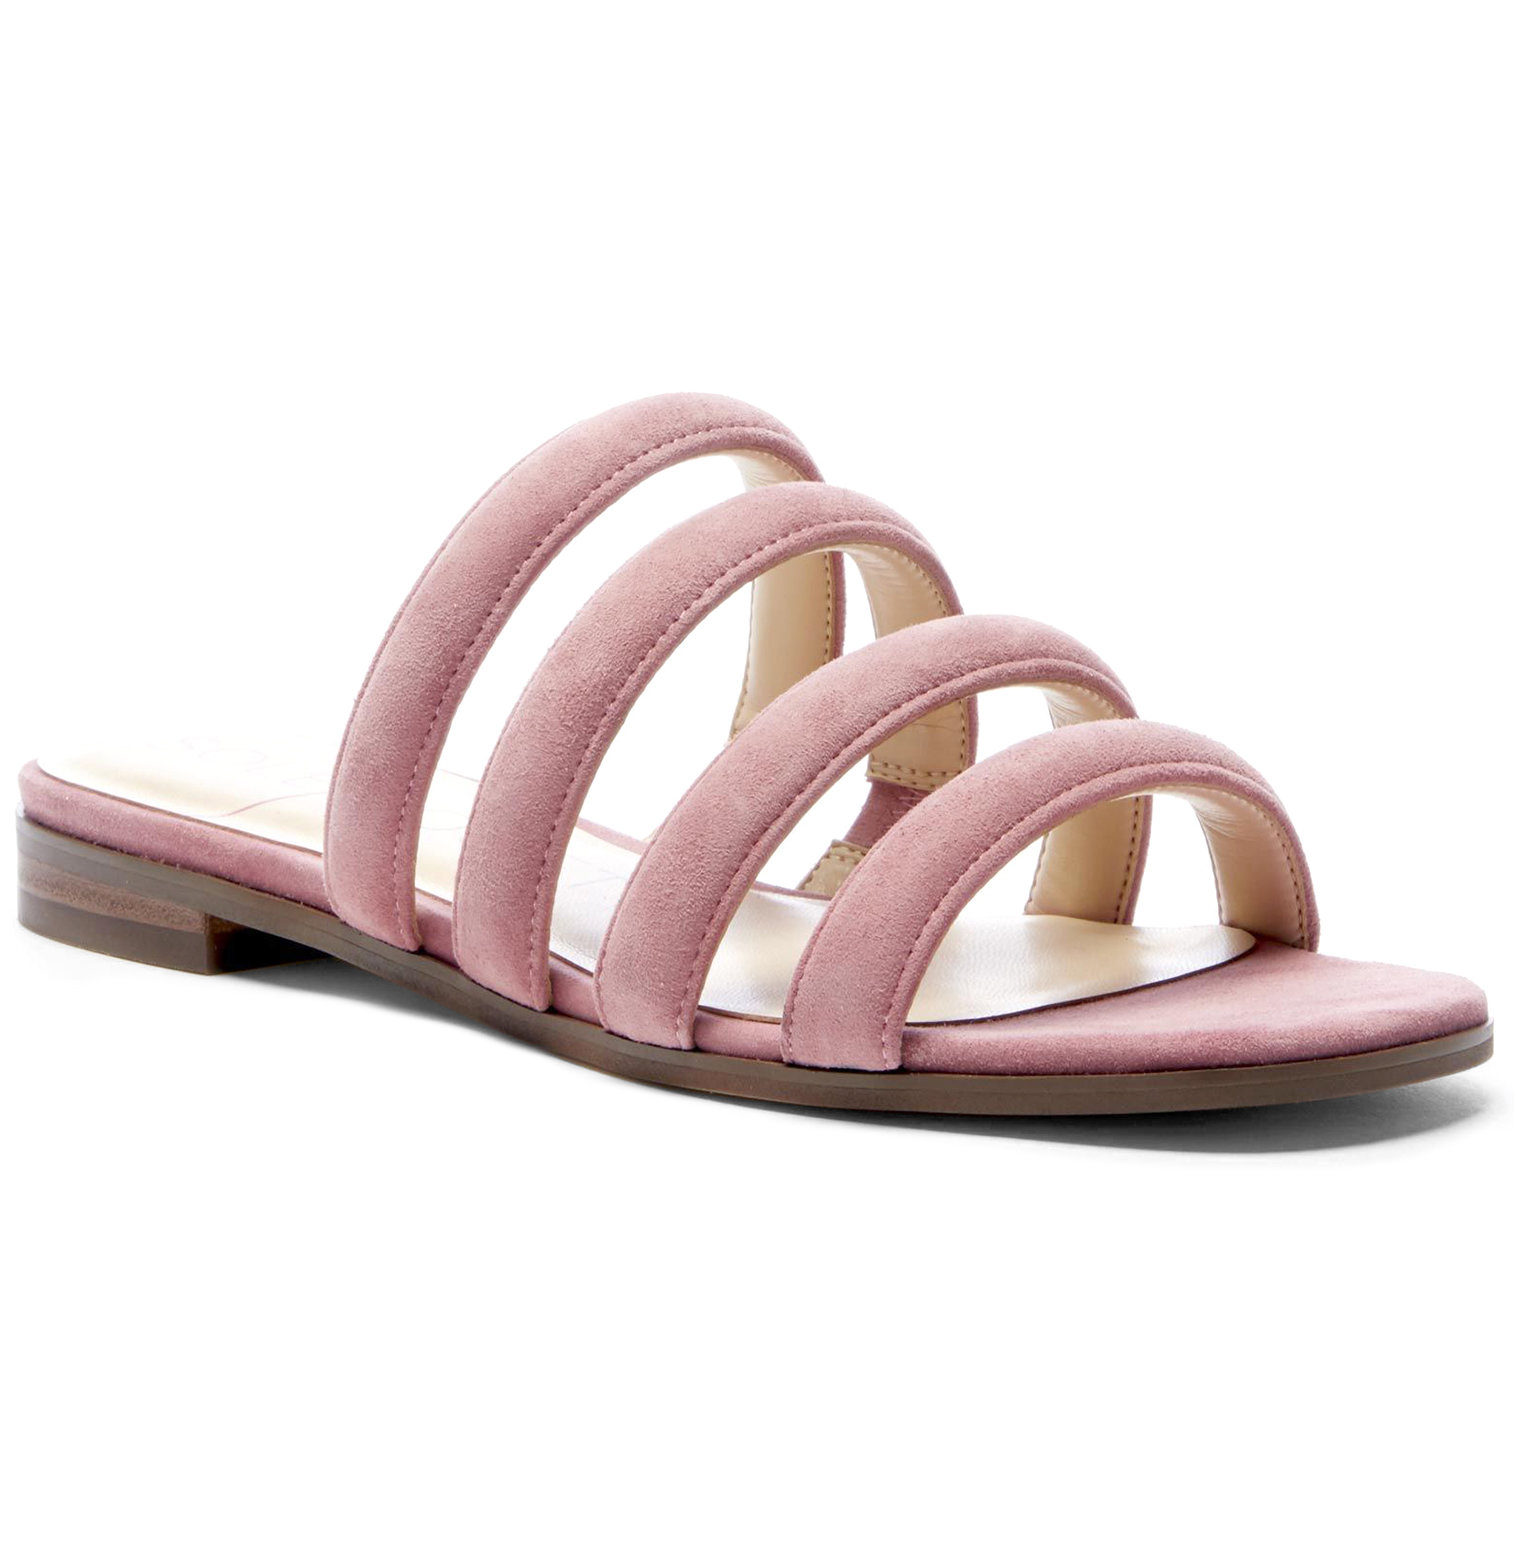 Sole Society Saxten Multi Strap Slide